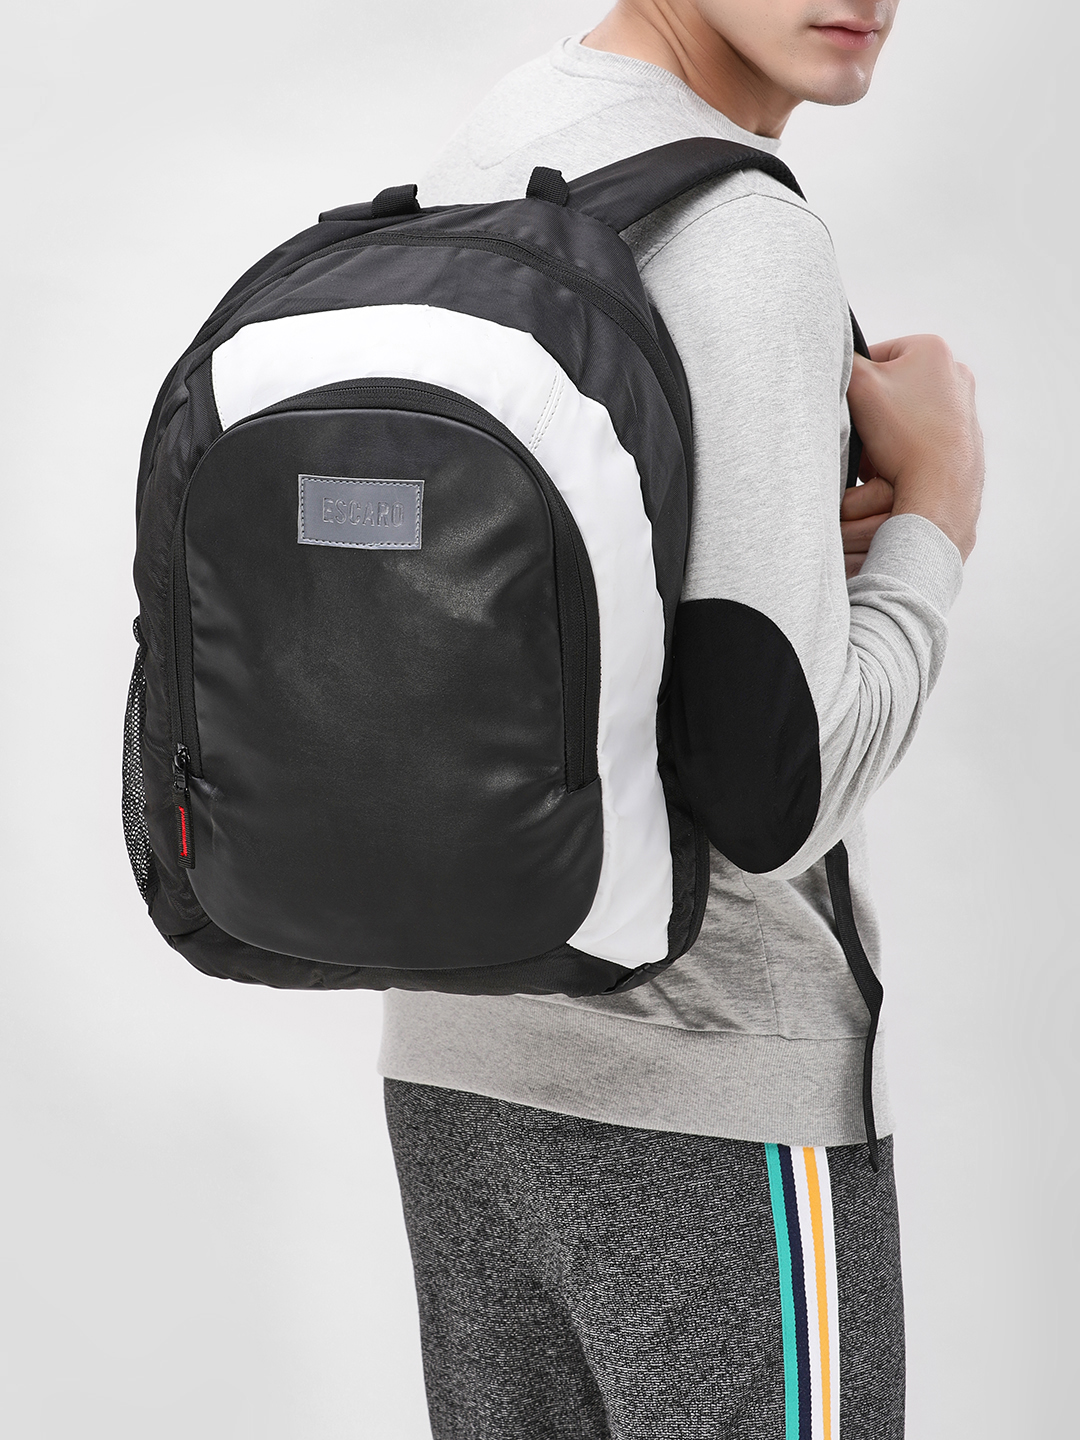 Escaro Black Dual Color Backpack 1